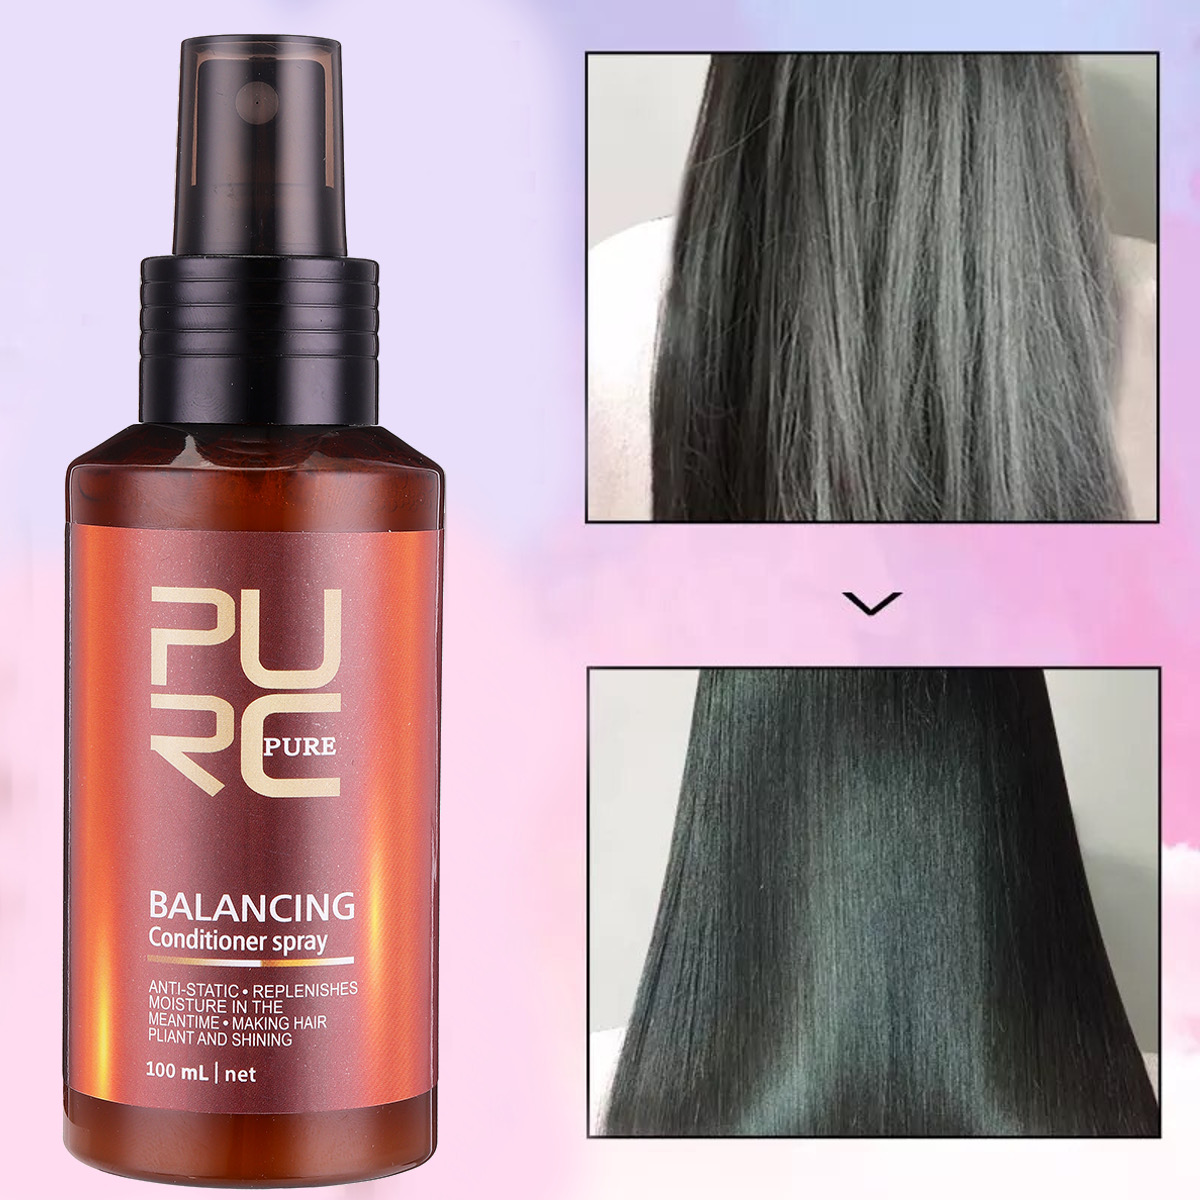 PURC Hair Balance Conditioner Spray